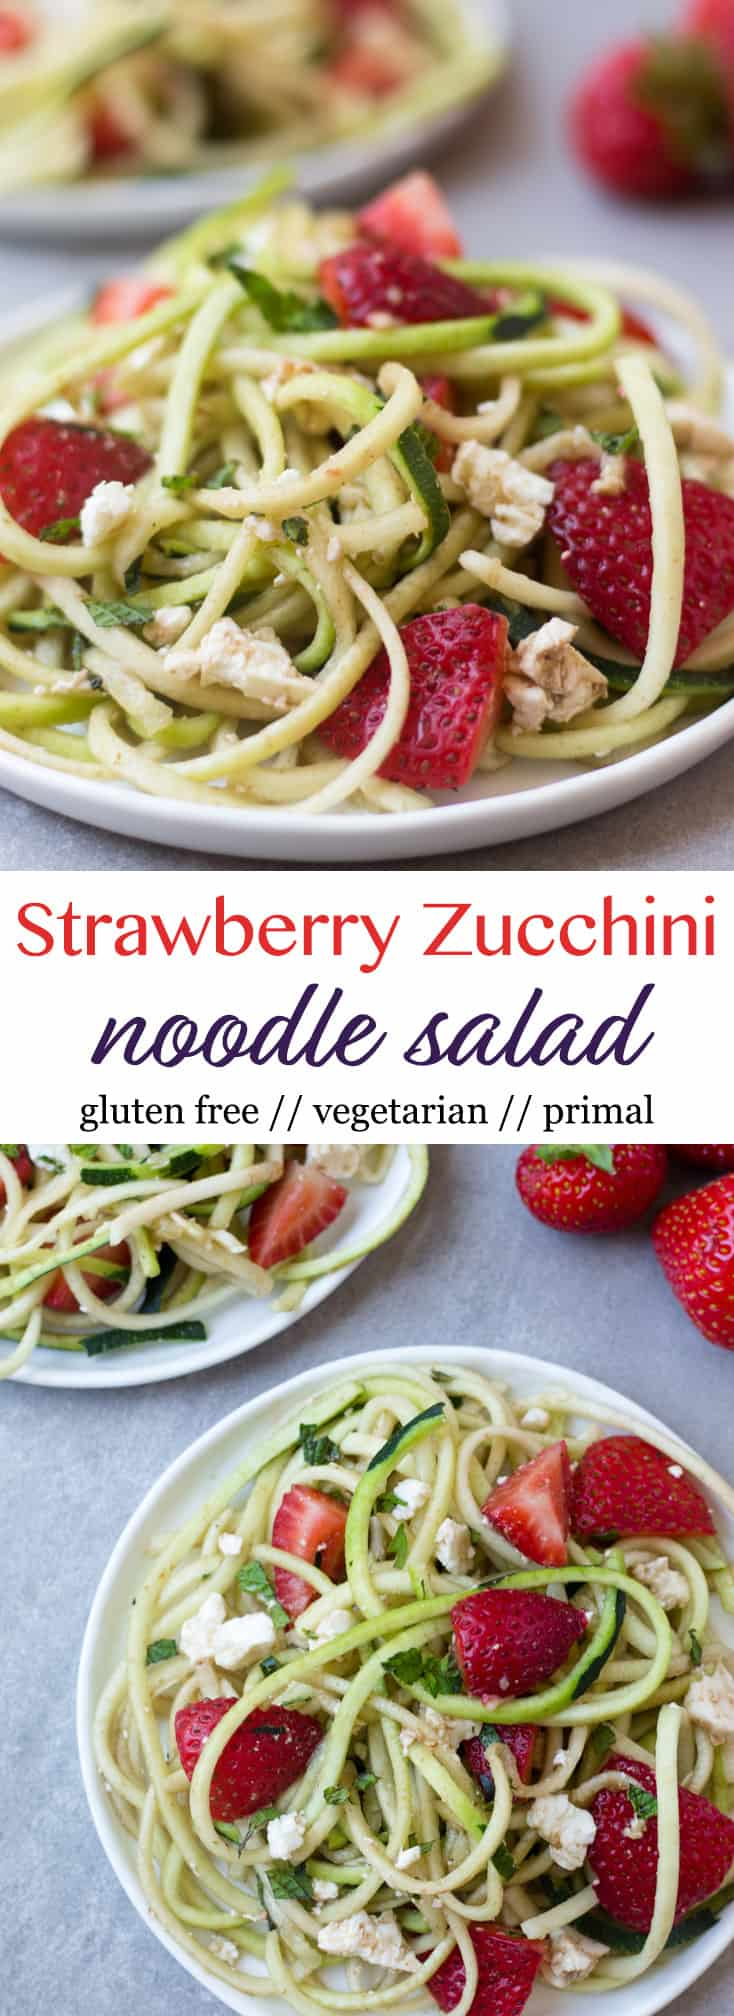 This Strawberry Zucchini Noodle Salad comes together in less than 10 minutes and makes a healthy, easy, and gluten free summertime dish - Eat the Gains